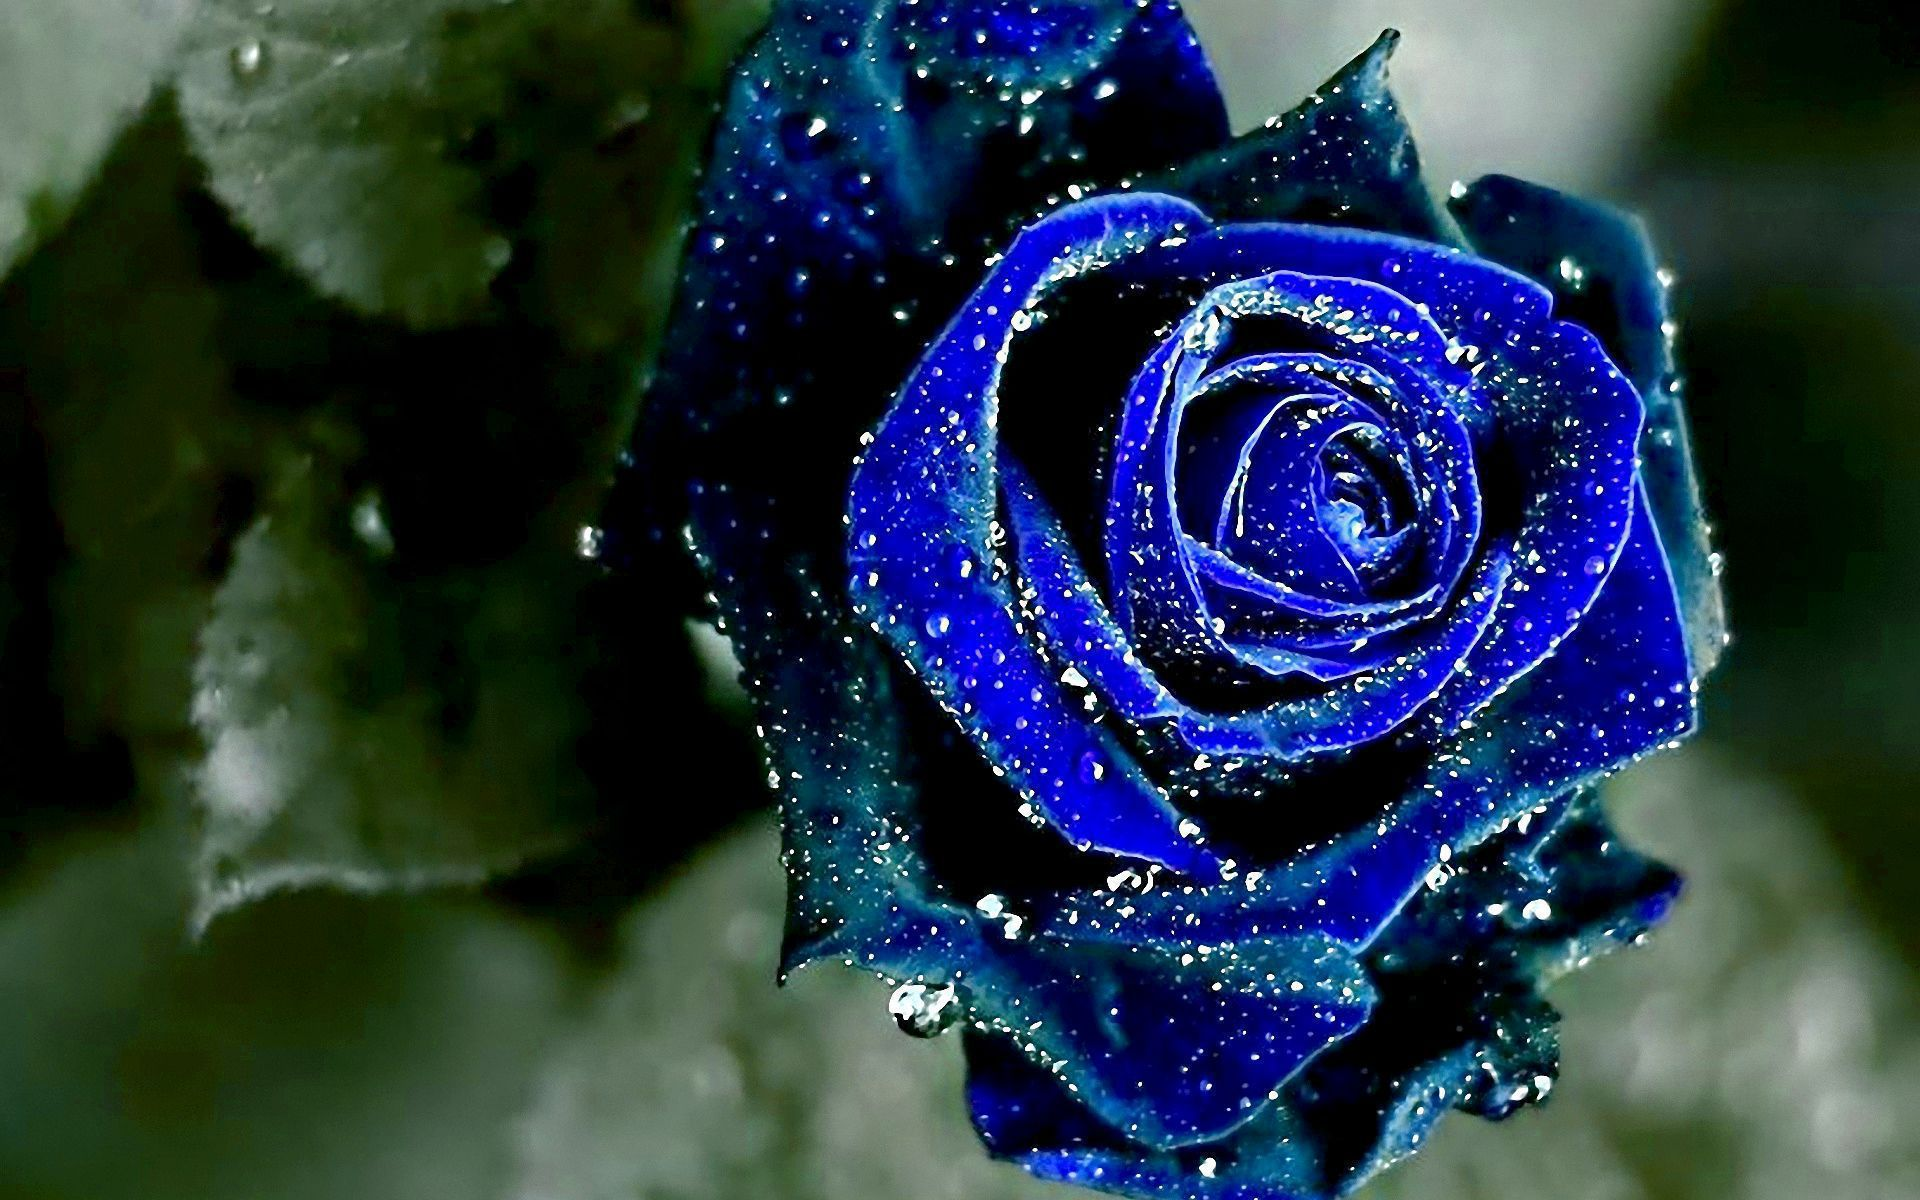 Blue Roses HD Wallpaper